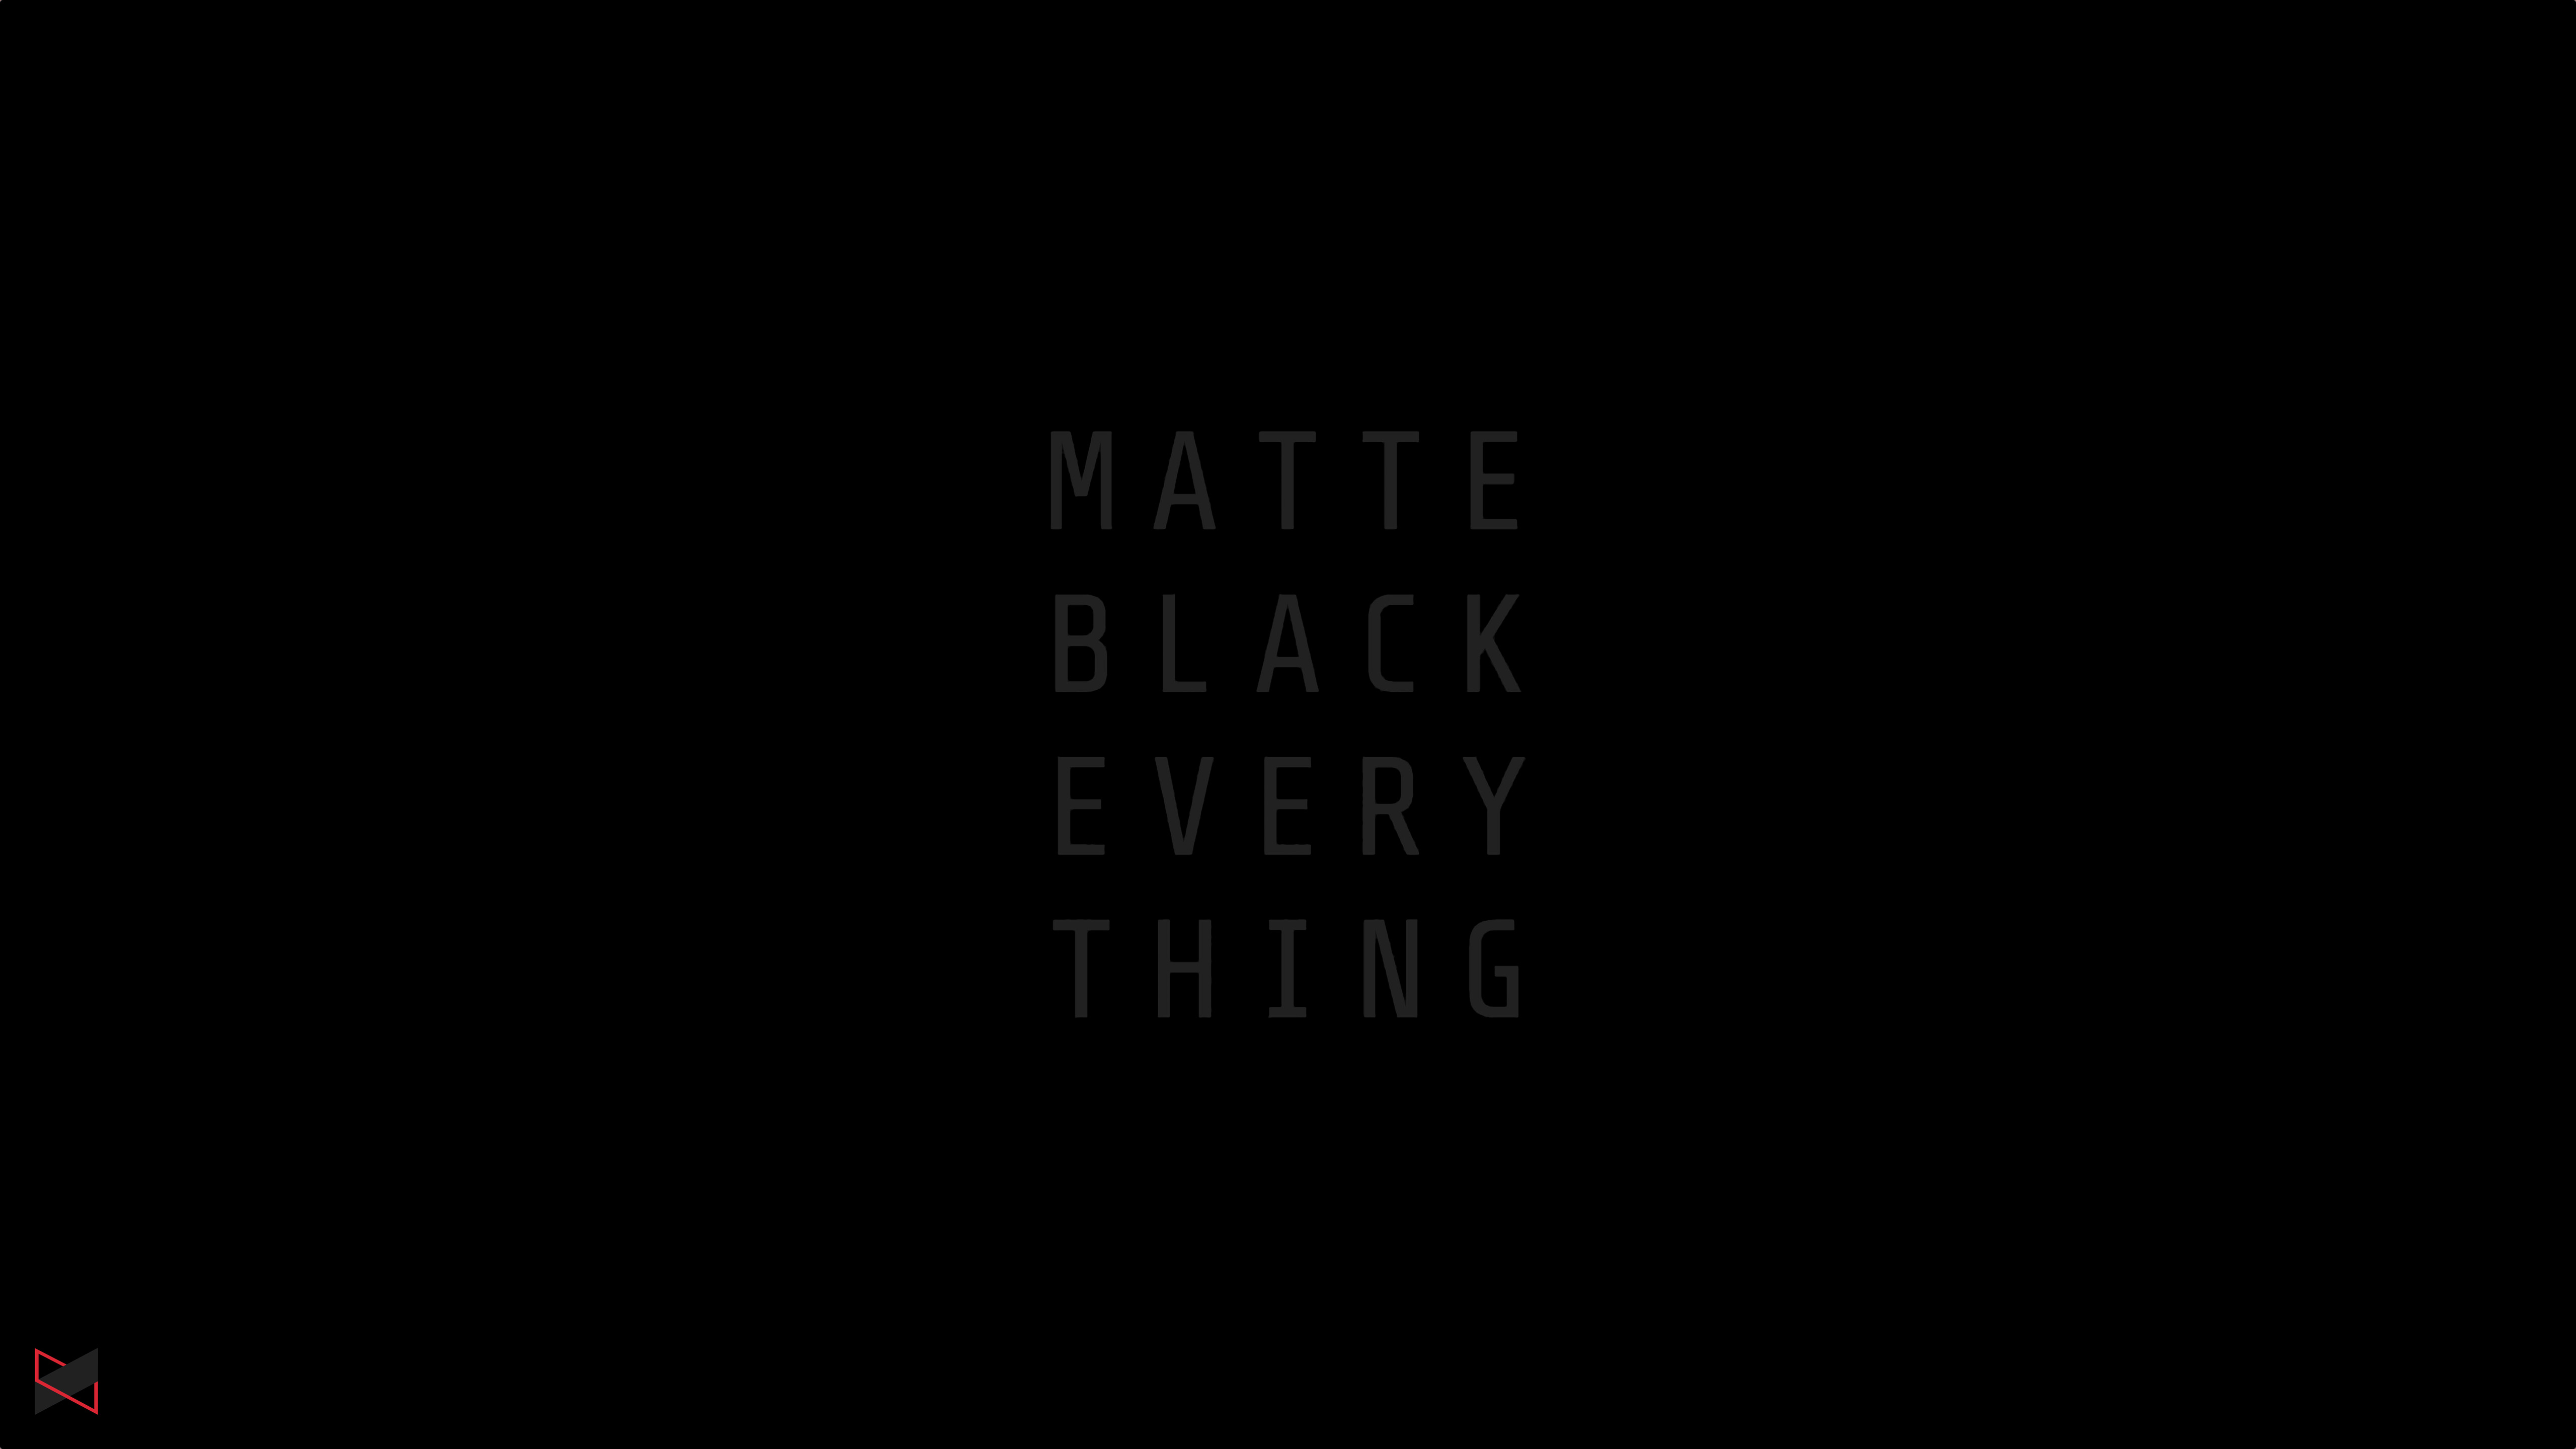 1080x1920 Matte Black Everything Mkbhd Iphone 7 6s 6 Plus Pixel Xl One Plus 3 3t 5 Hd 4k Wallpapers Images Backgrounds Photos And Pictures